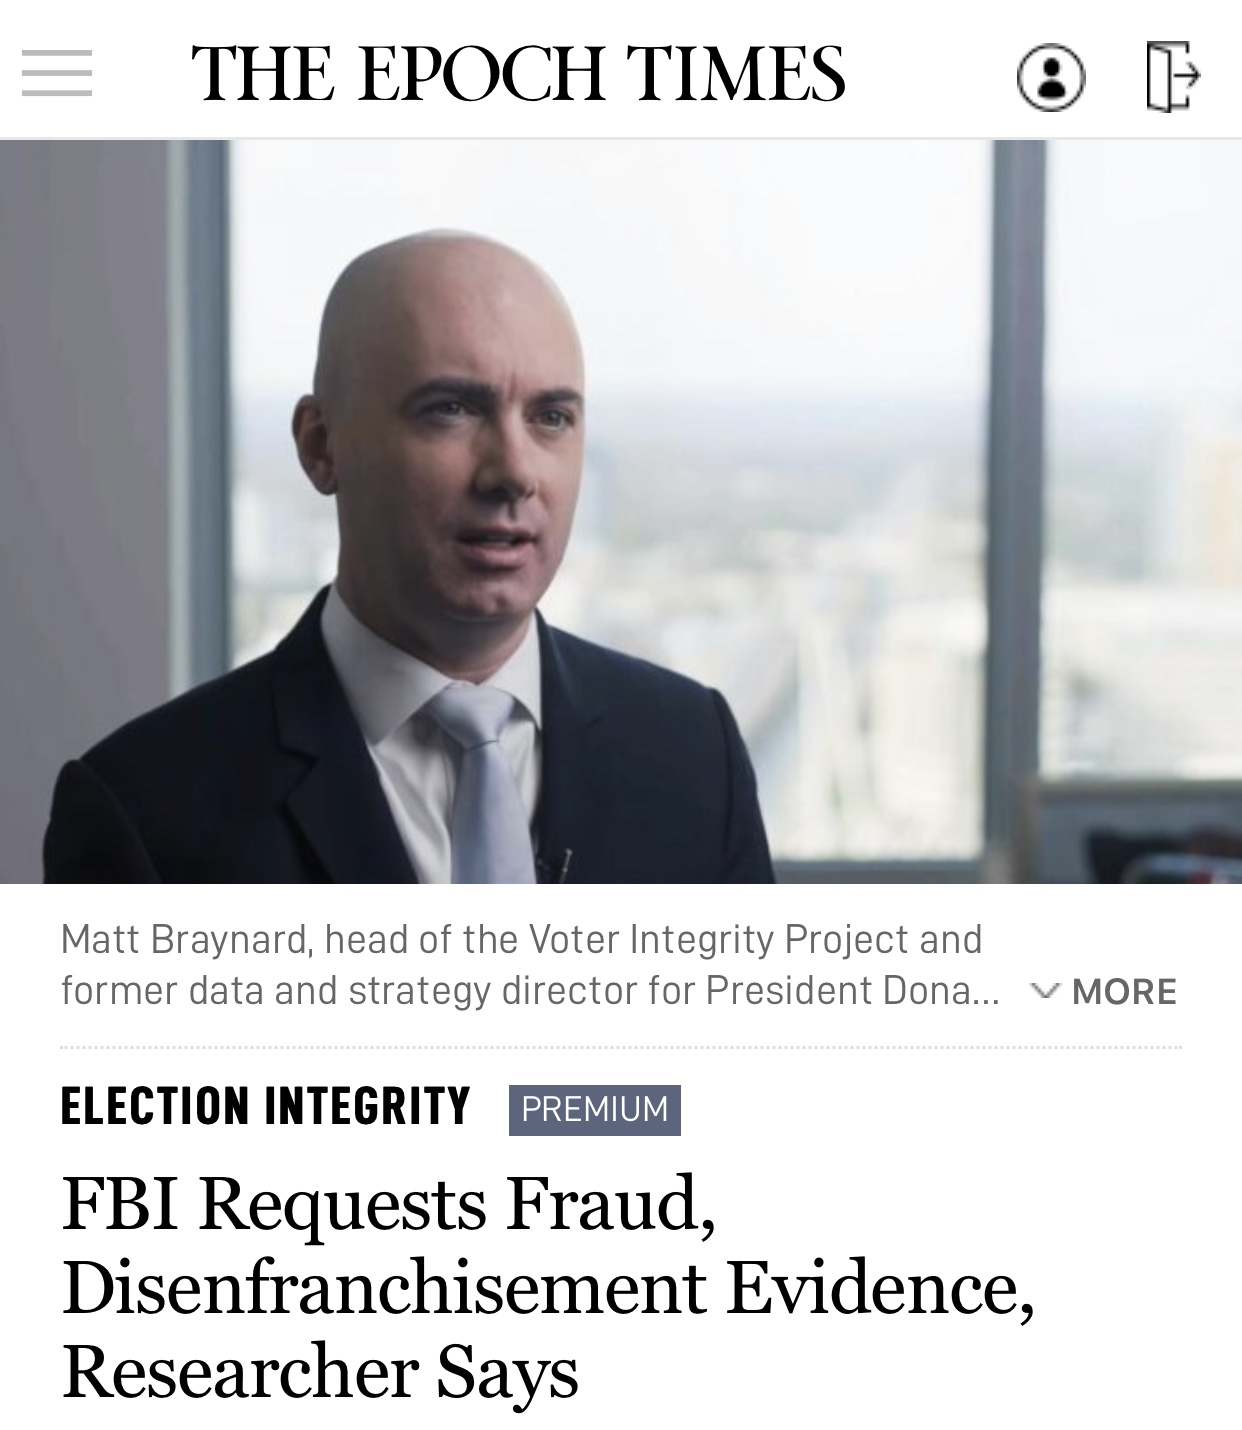 FBI Requests Fraud, Disenfranchisement Evidence, Researcher Says